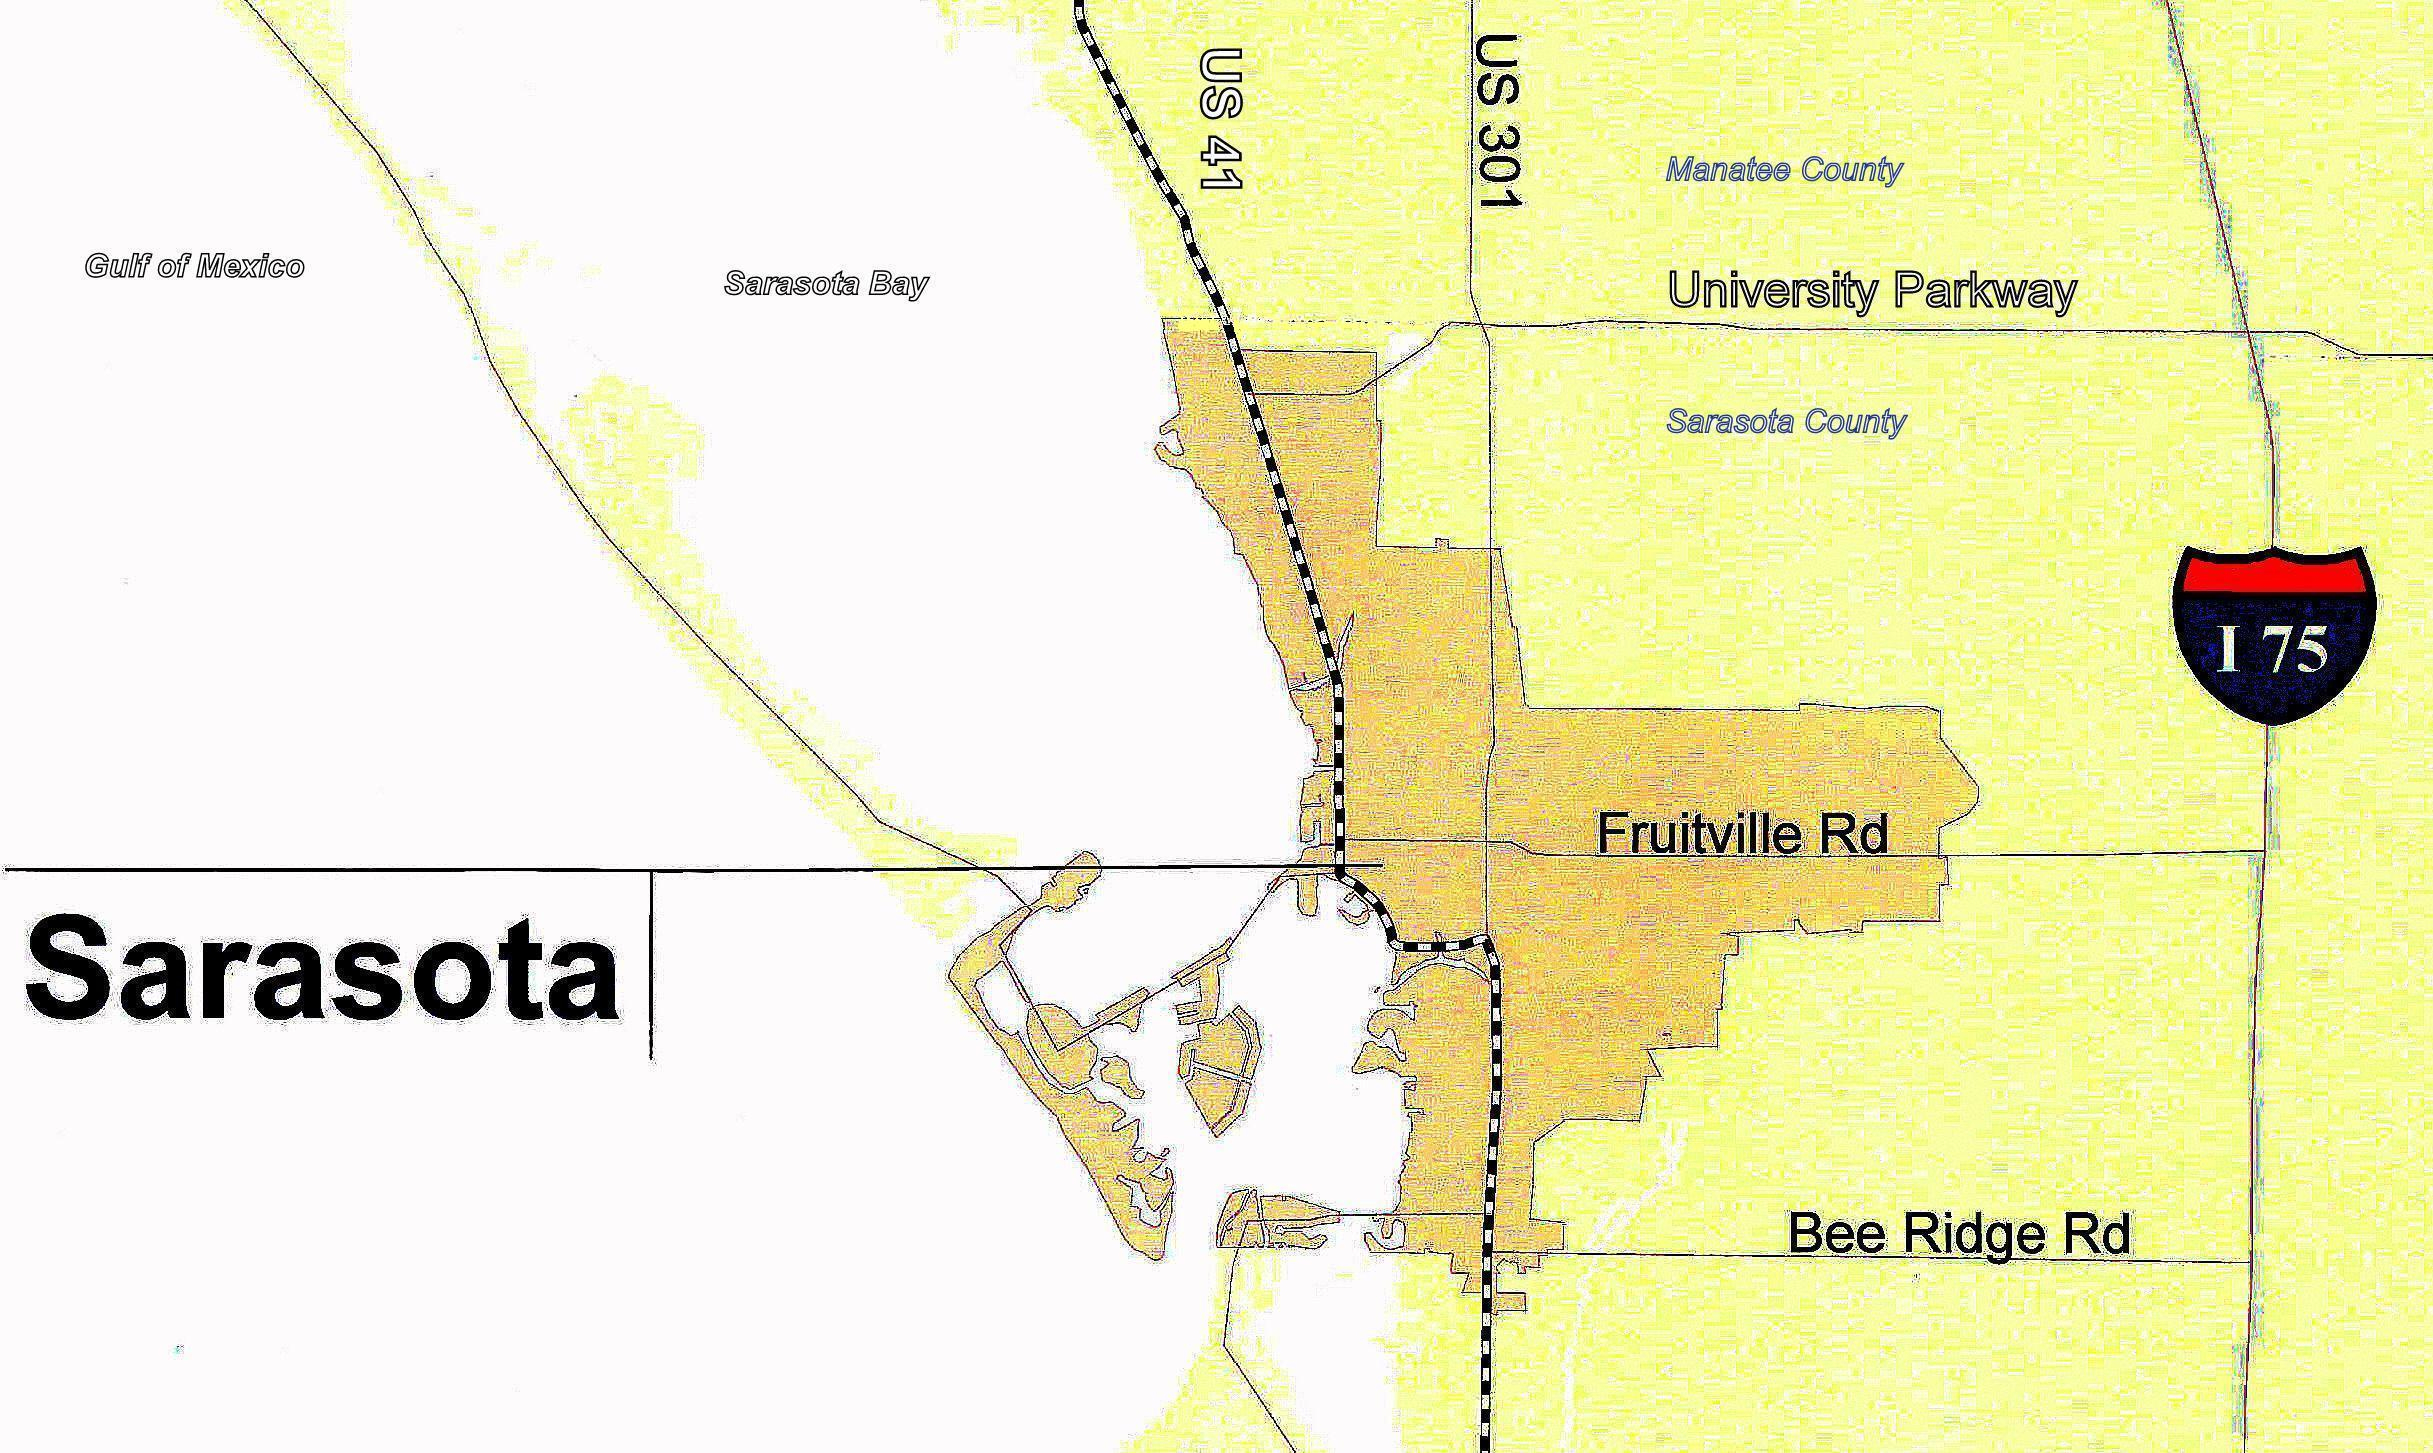 File:sarasota - City Colored Gold 2.0 - 83D40M - Map Of Tamiami - Map Of Sarasota Florida And Surrounding Area